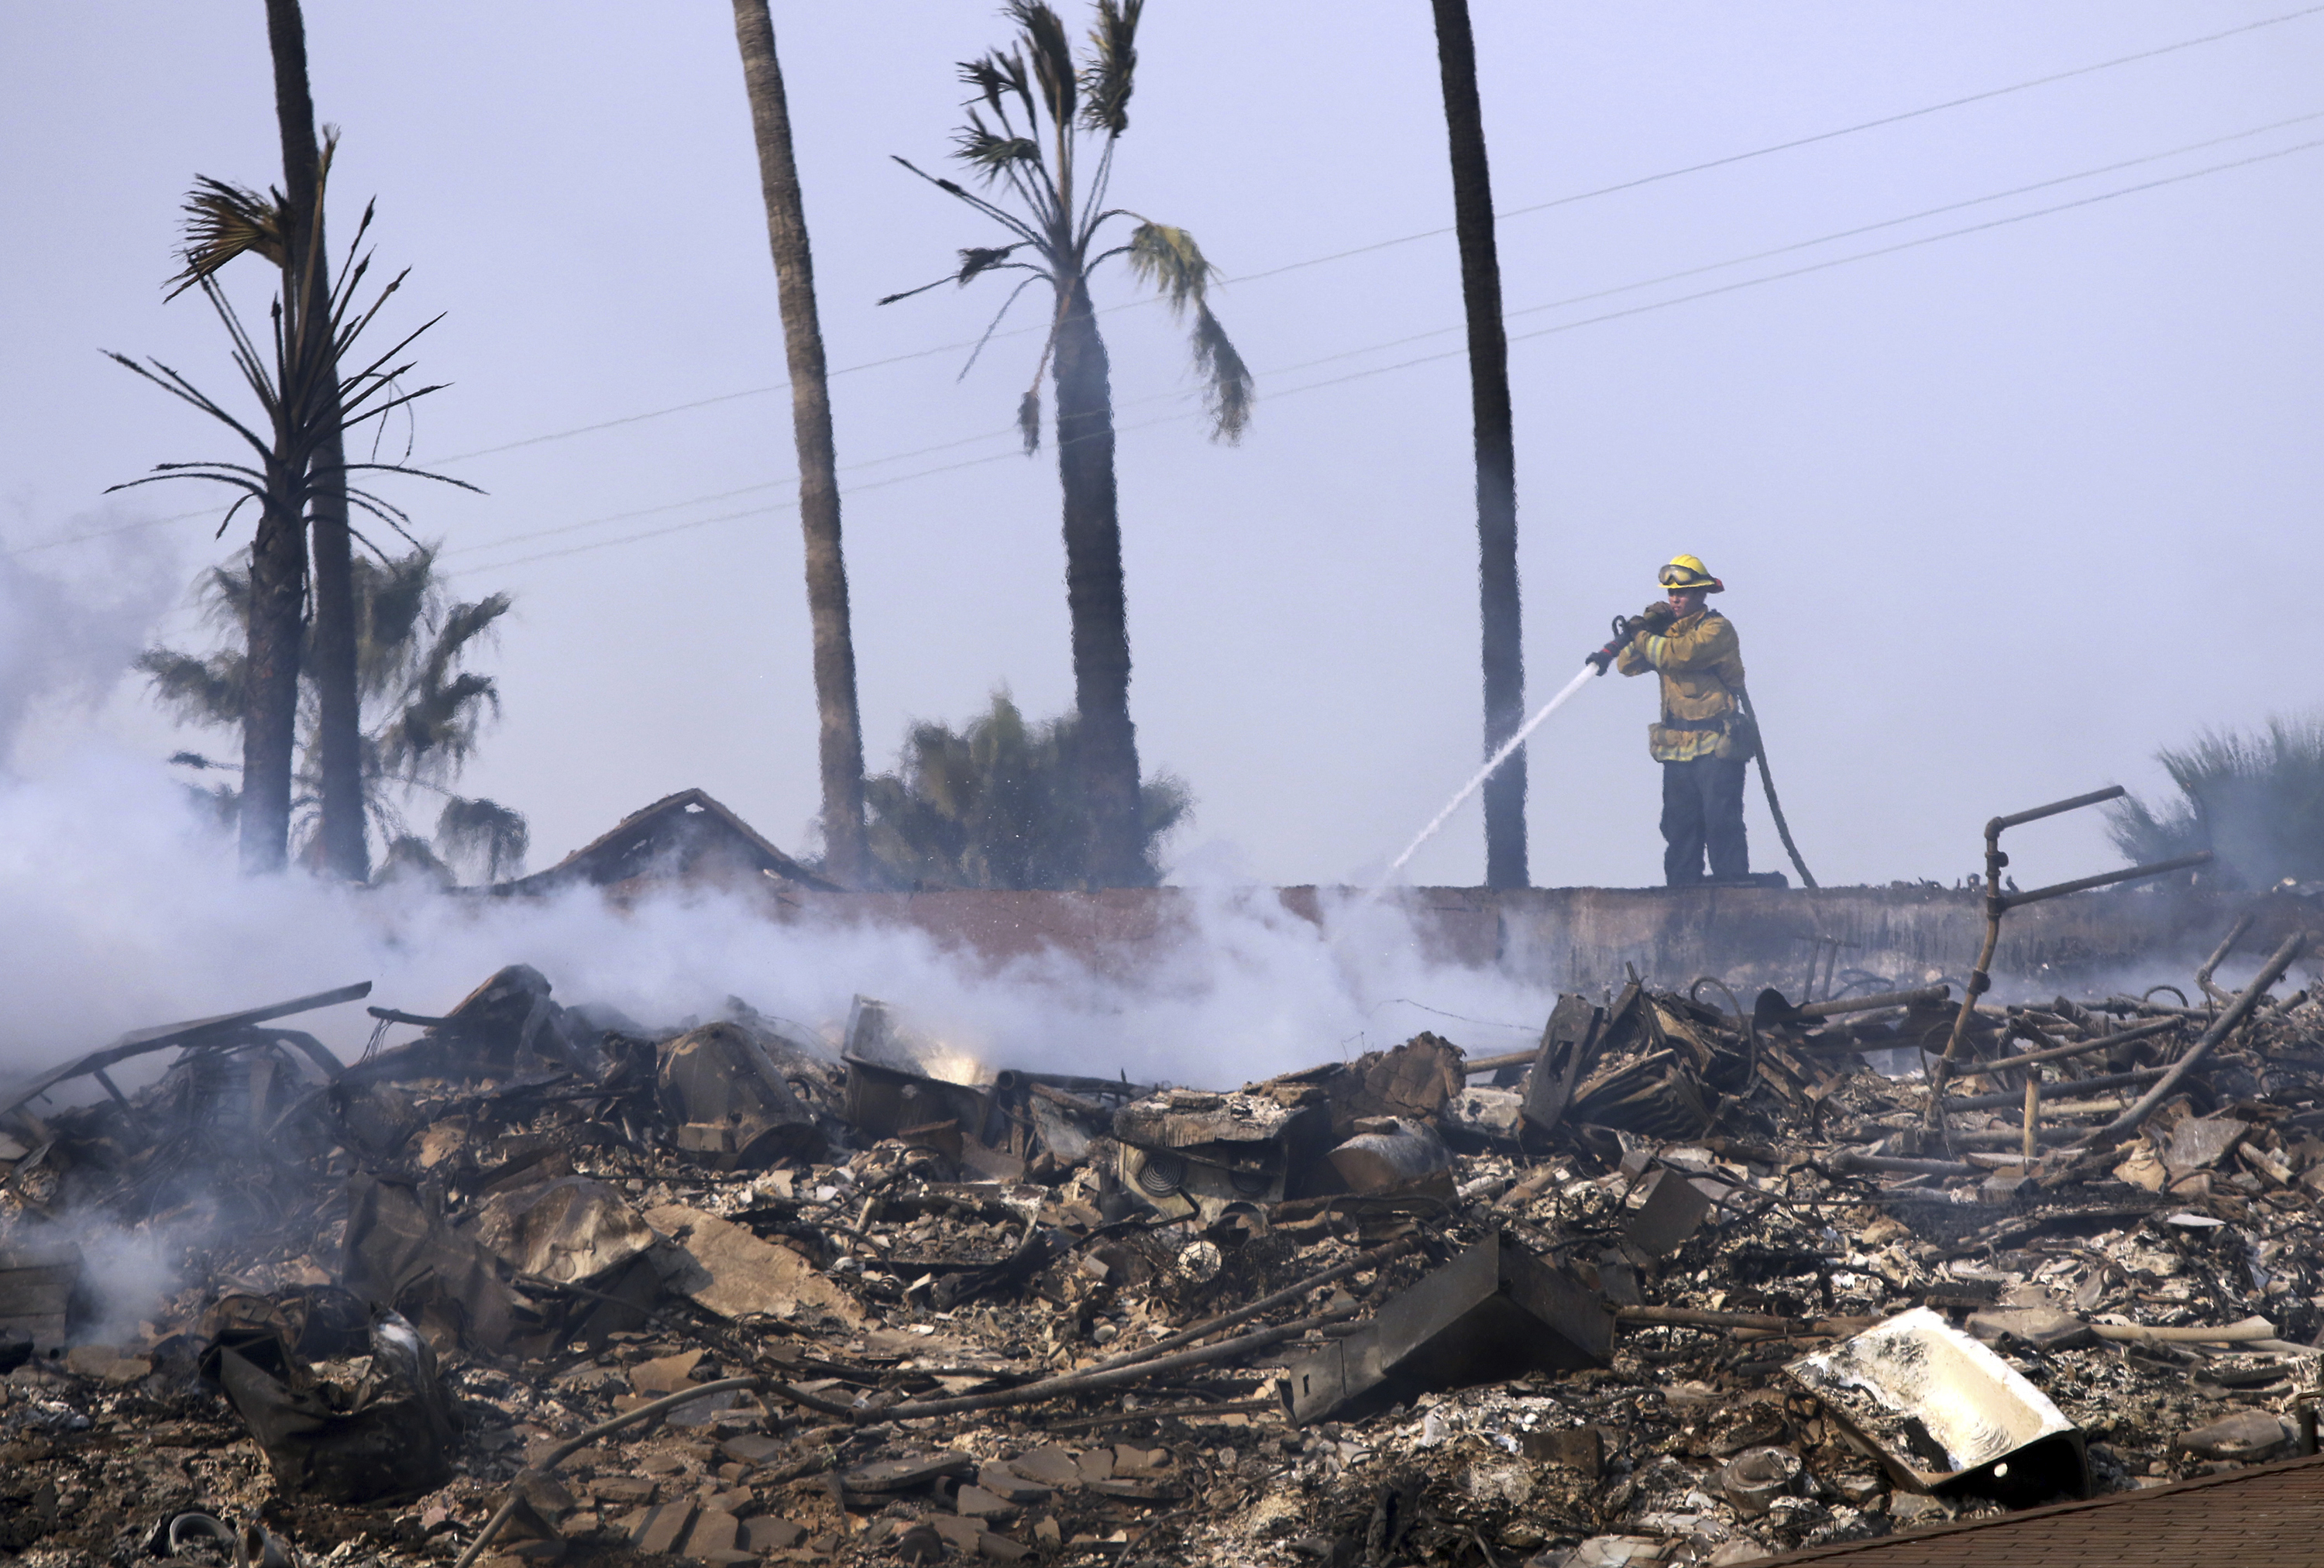 <div class='meta'><div class='origin-logo' data-origin='none'></div><span class='caption-text' data-credit='Daniel Dreifuss via AP'>A firefighter hoses down the remains of a destroyed home after the Thomas fire swept through Ventura, Calif., Tuesday, Dec. 5, 2017.</span></div>